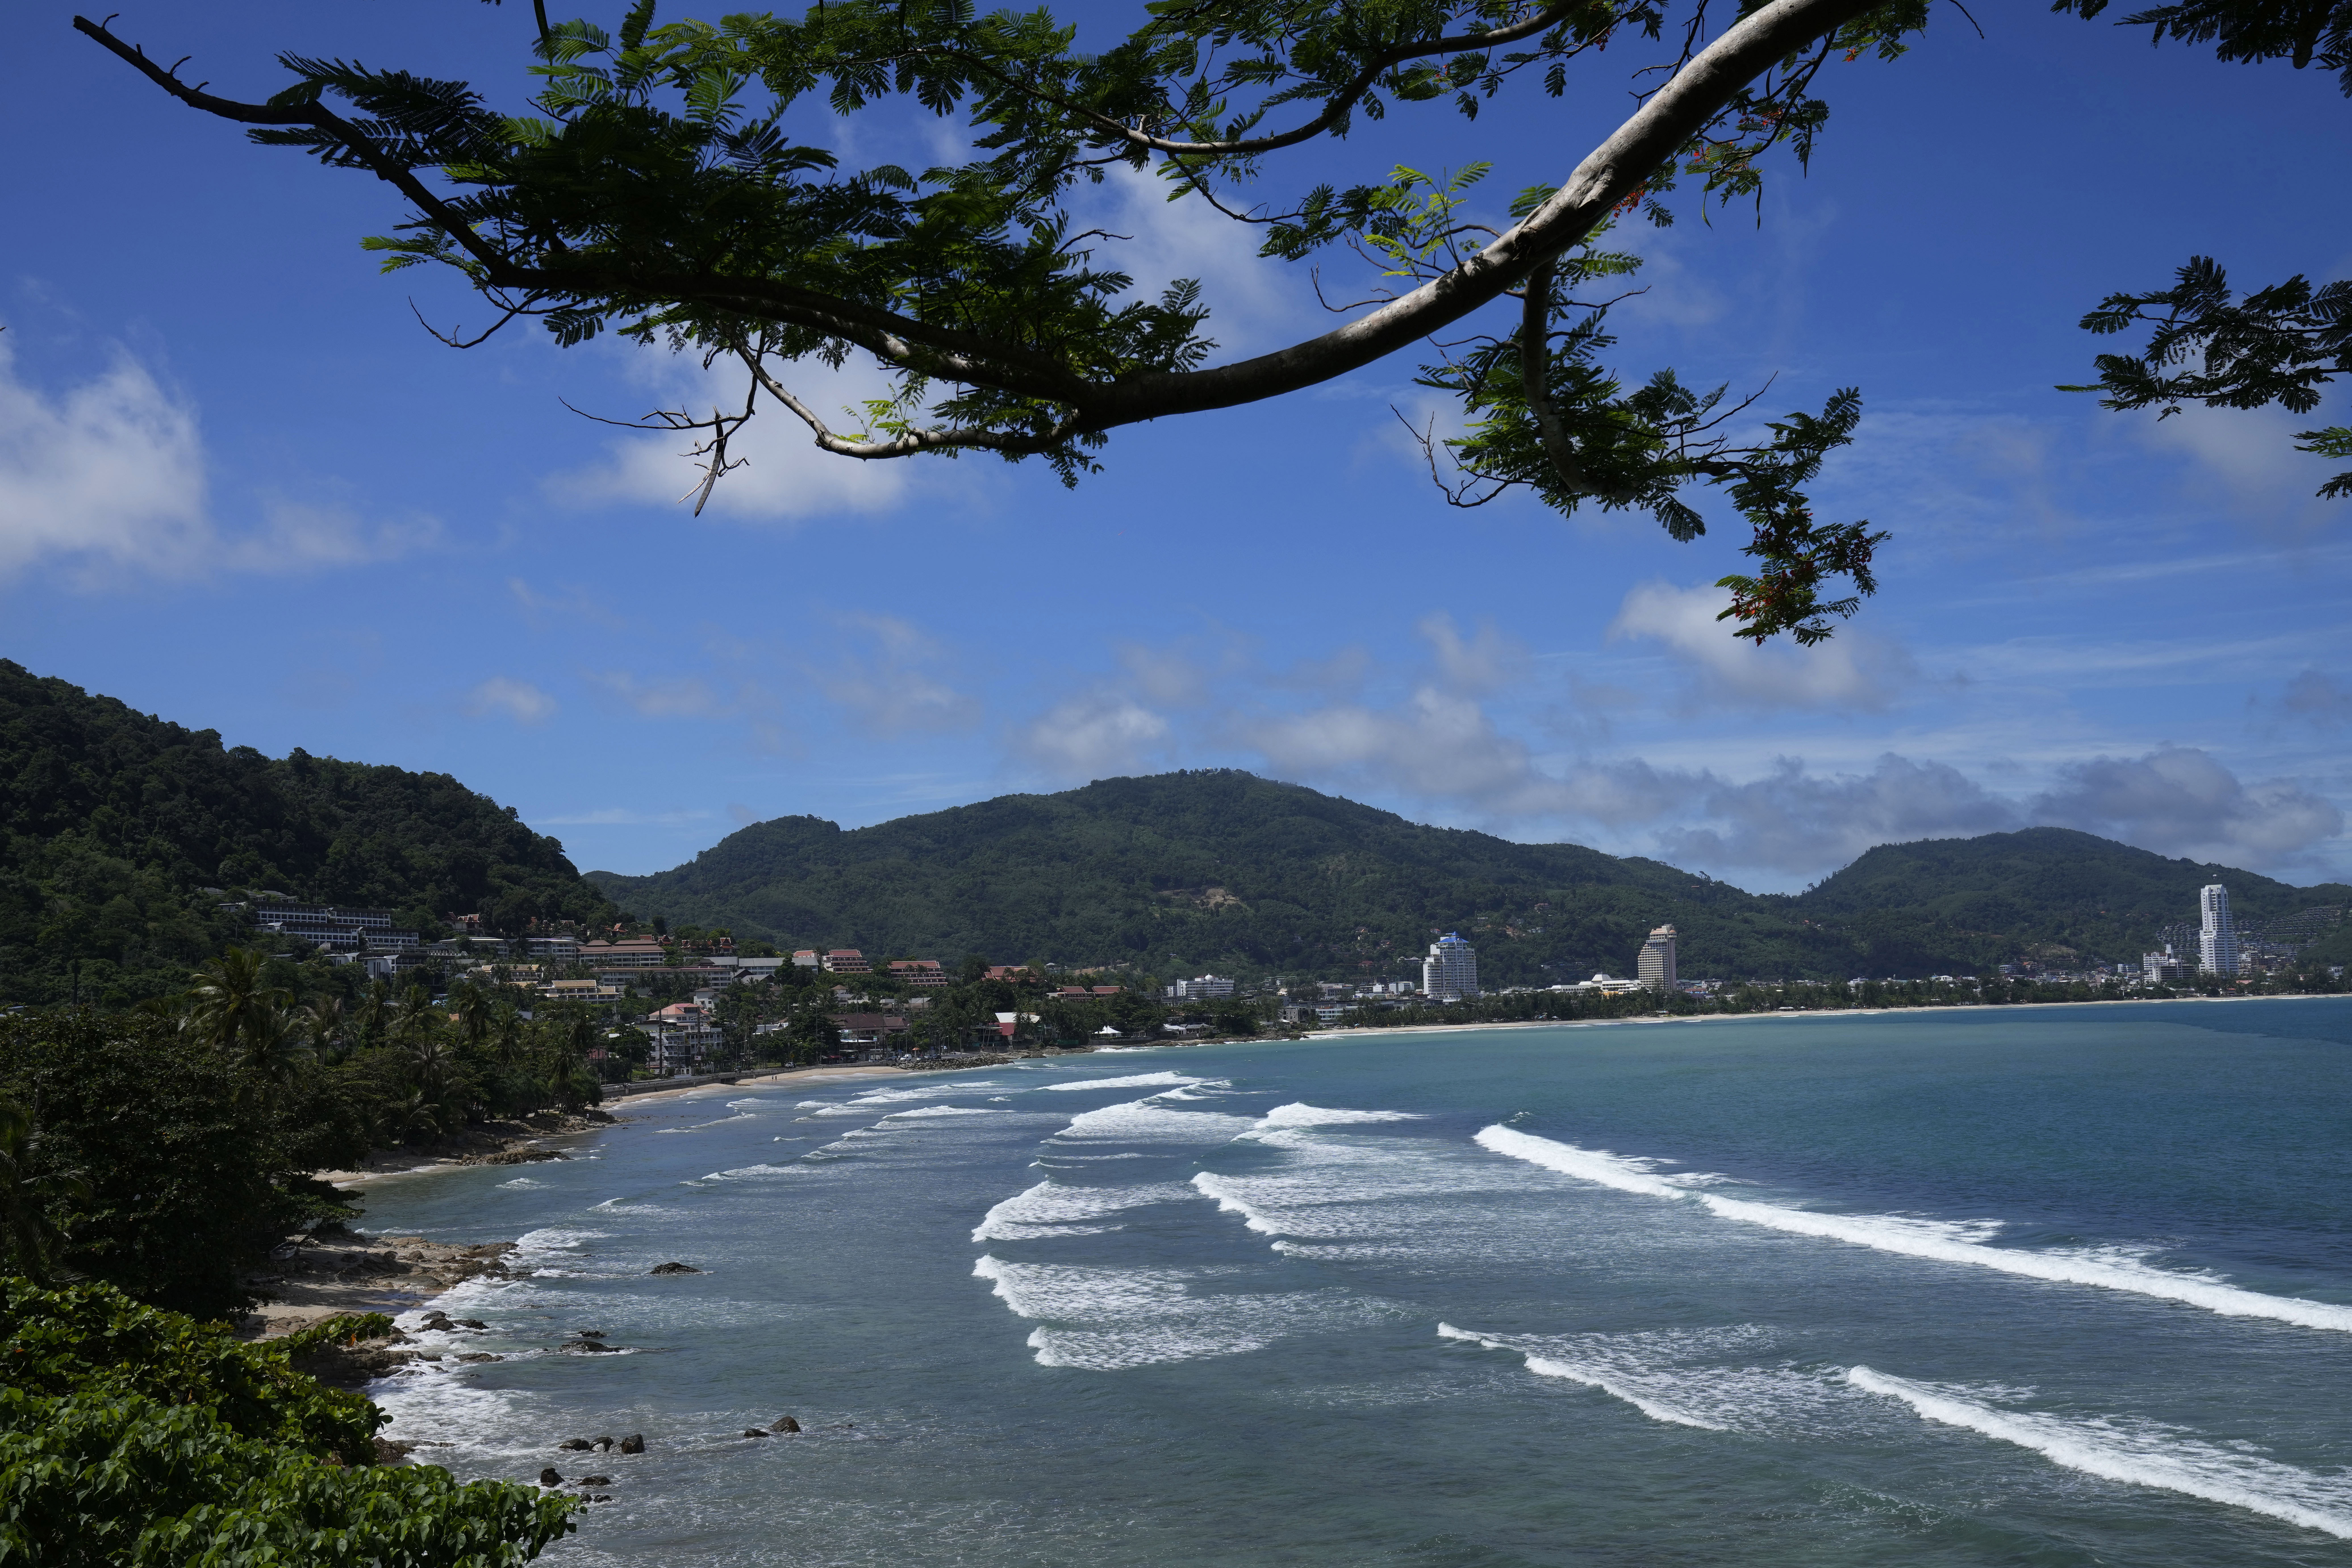 Waves break on the empty tourist beach of Patong on Phuket, southern Thailand, June 29, 2021.